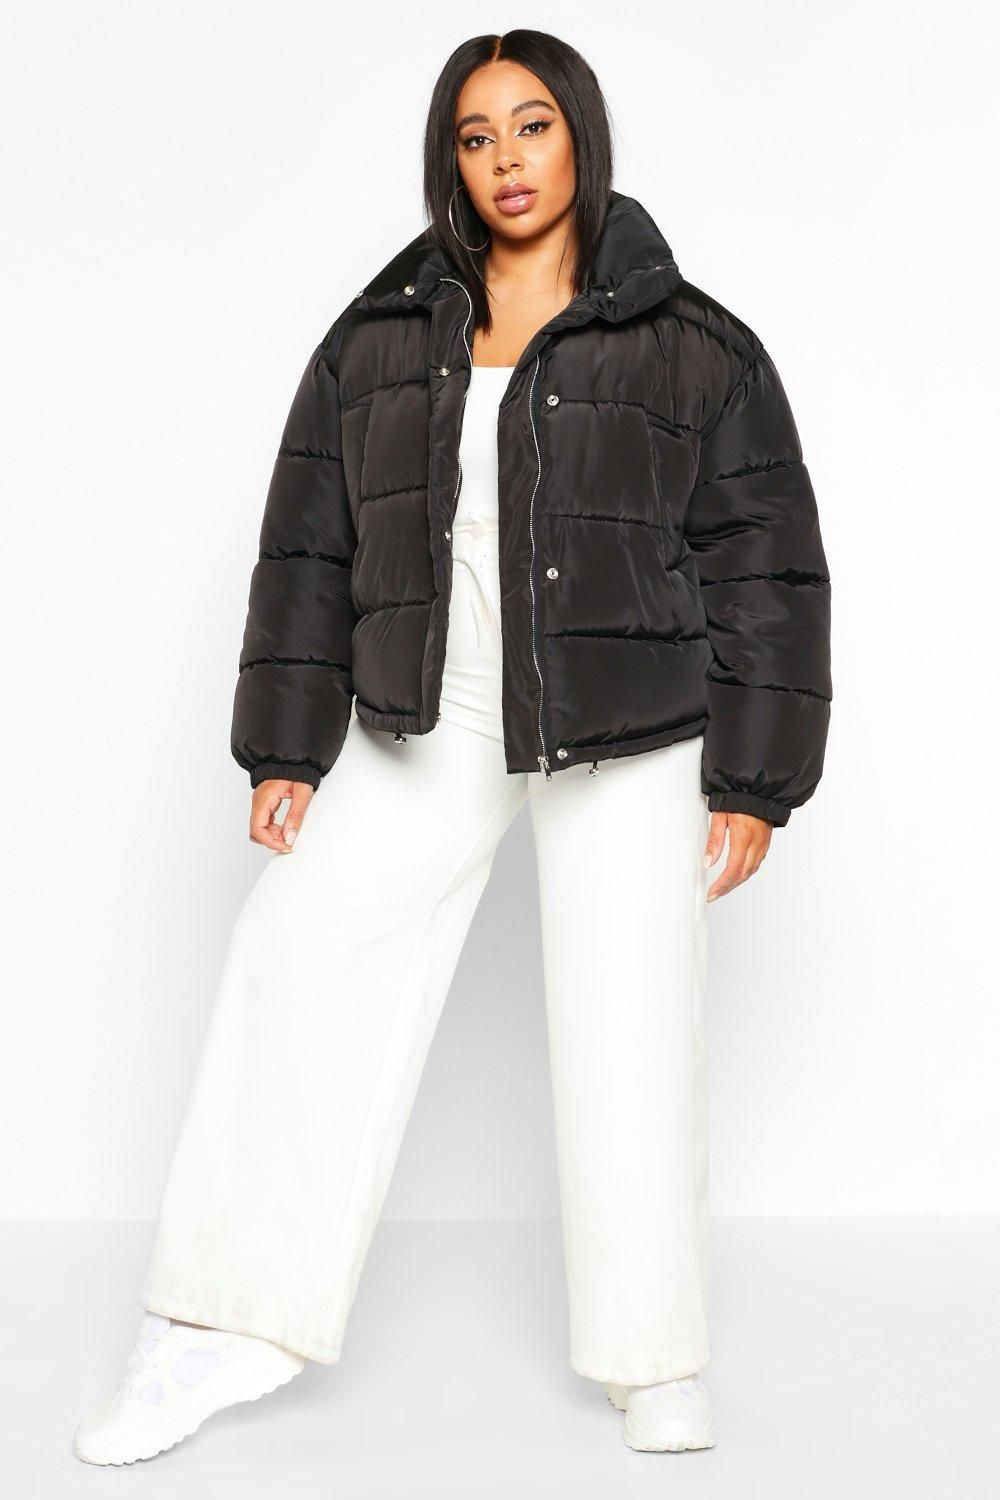 Plus Funnel Neck Cropped Puffer Jacket Boohoo Cropped Puffer Jacket Puffer Jackets Jackets [ 1500 x 1000 Pixel ]